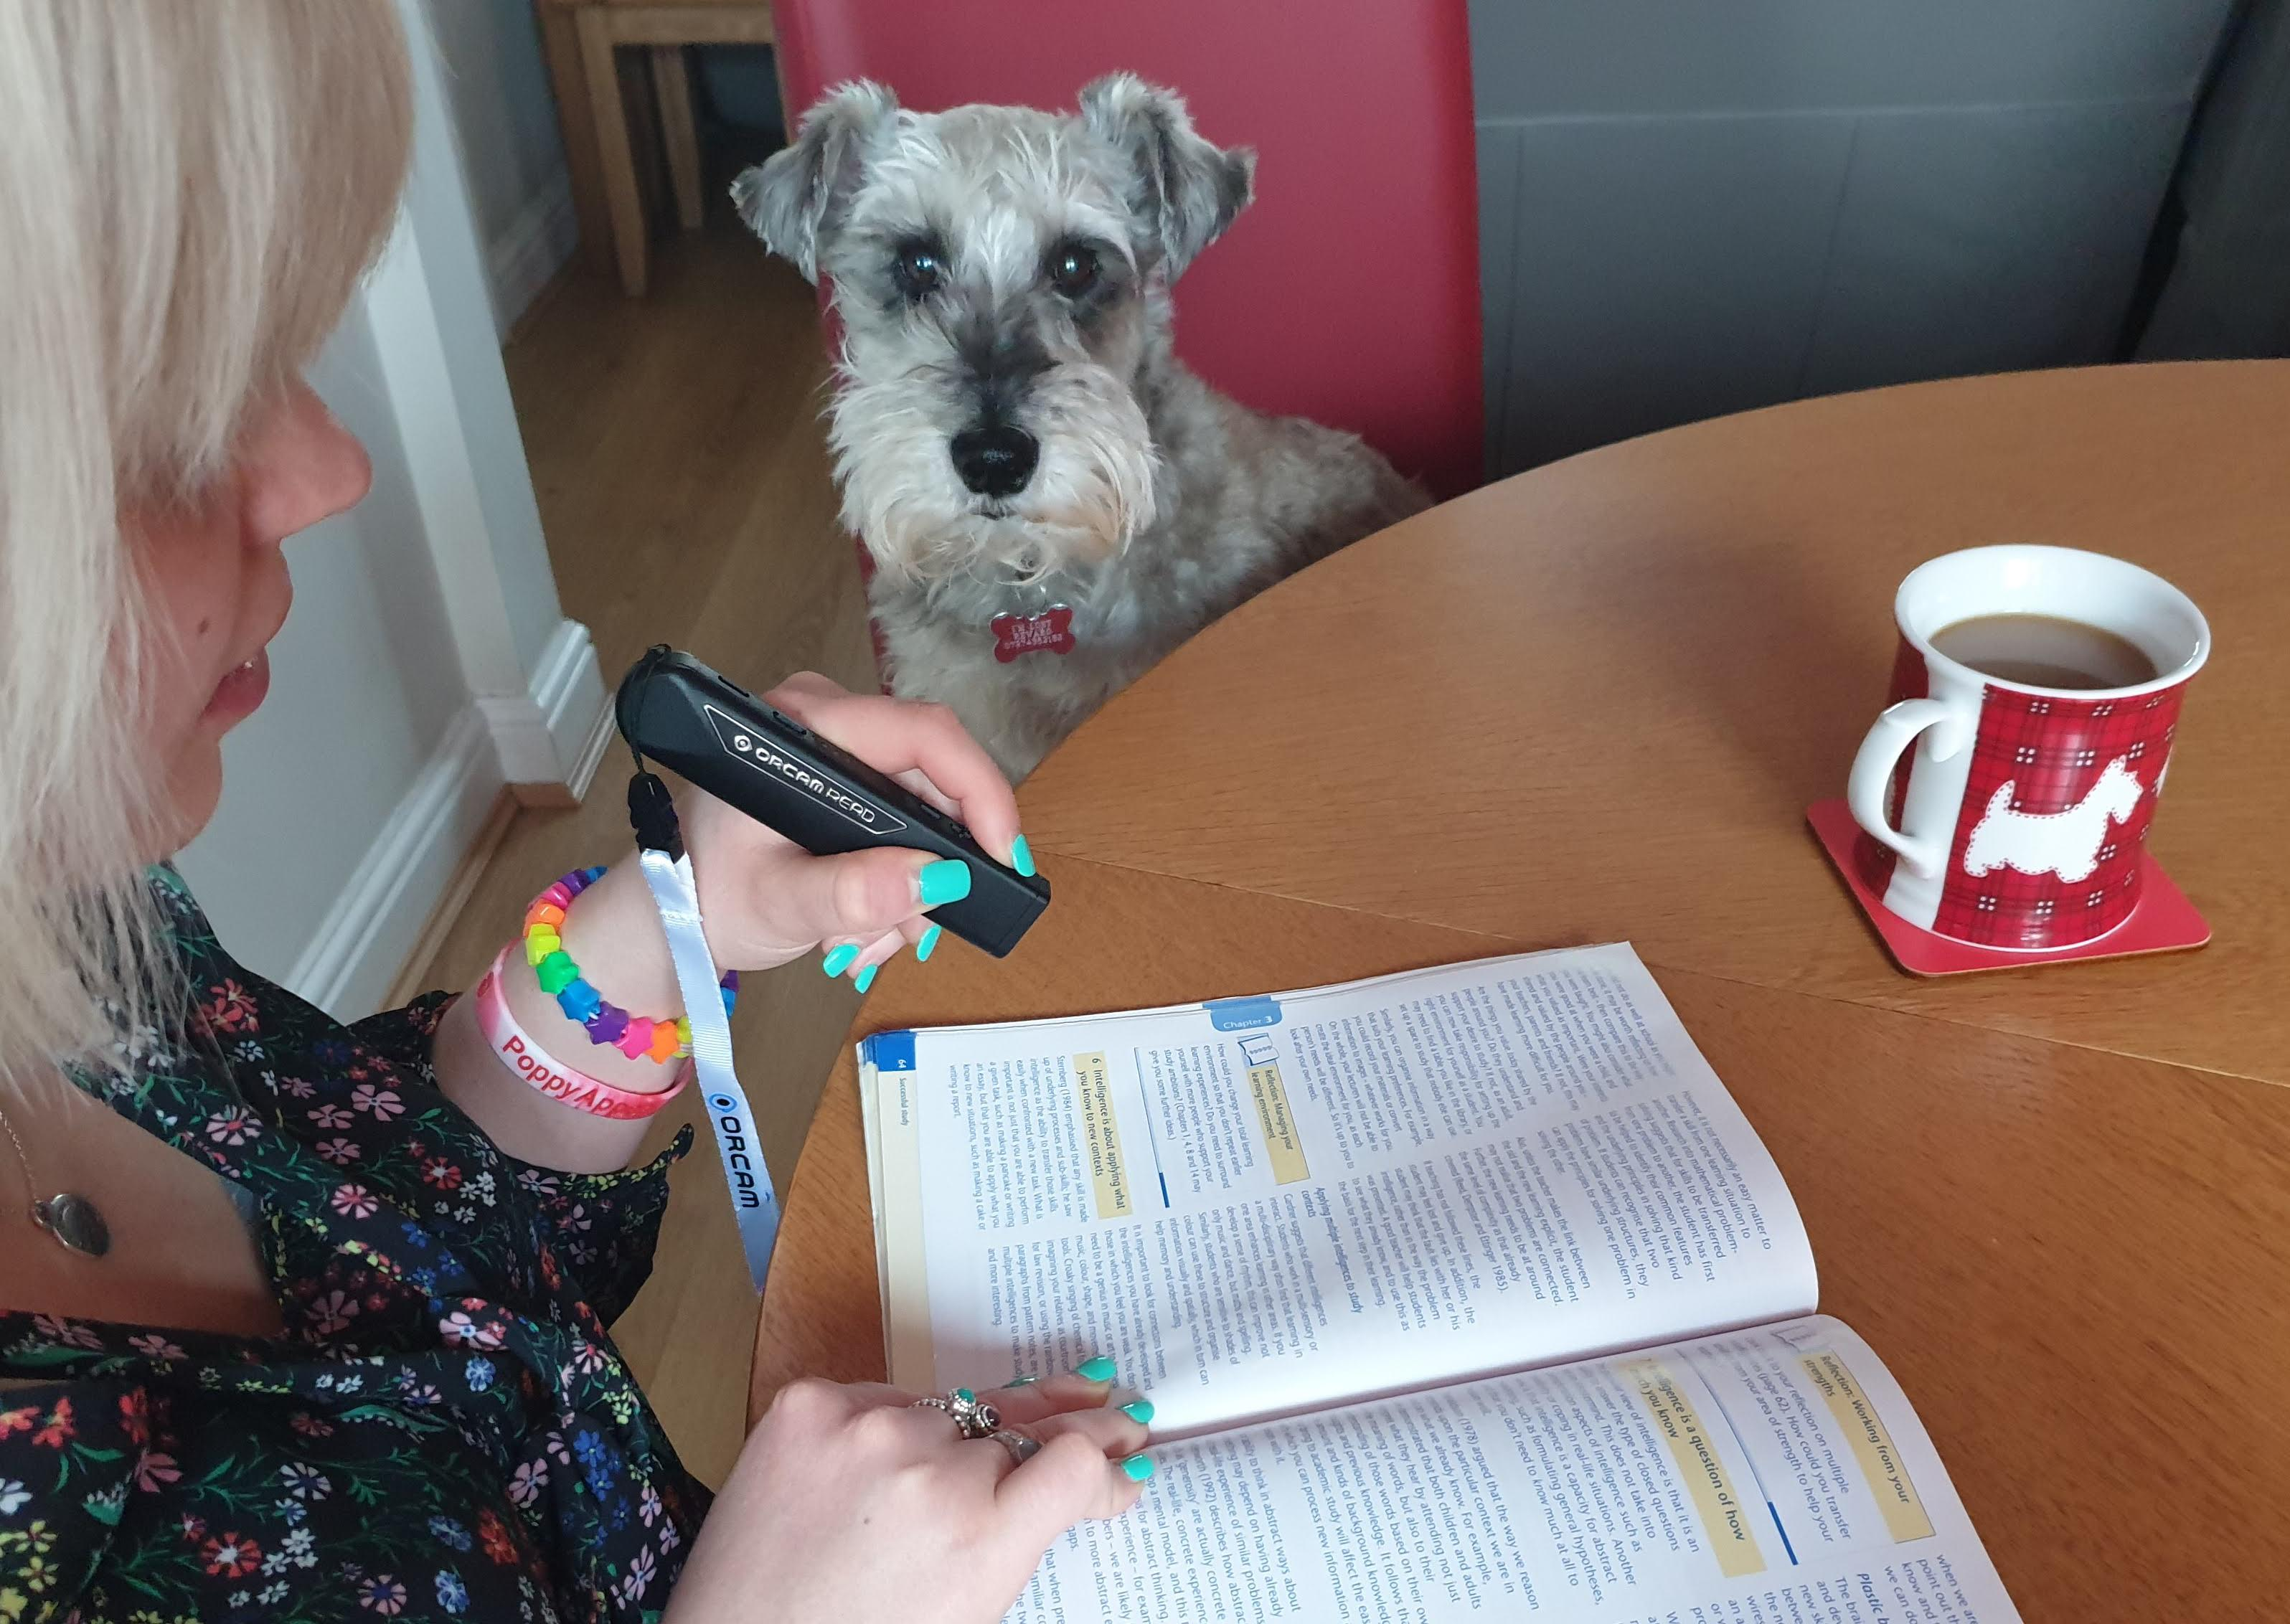 A Student using her VisionAid OrCam Read Smart - SpLD Edition (DSA) to read a workbook at home, there is a cup of coffee on the table and a schnauzer dog sat with her